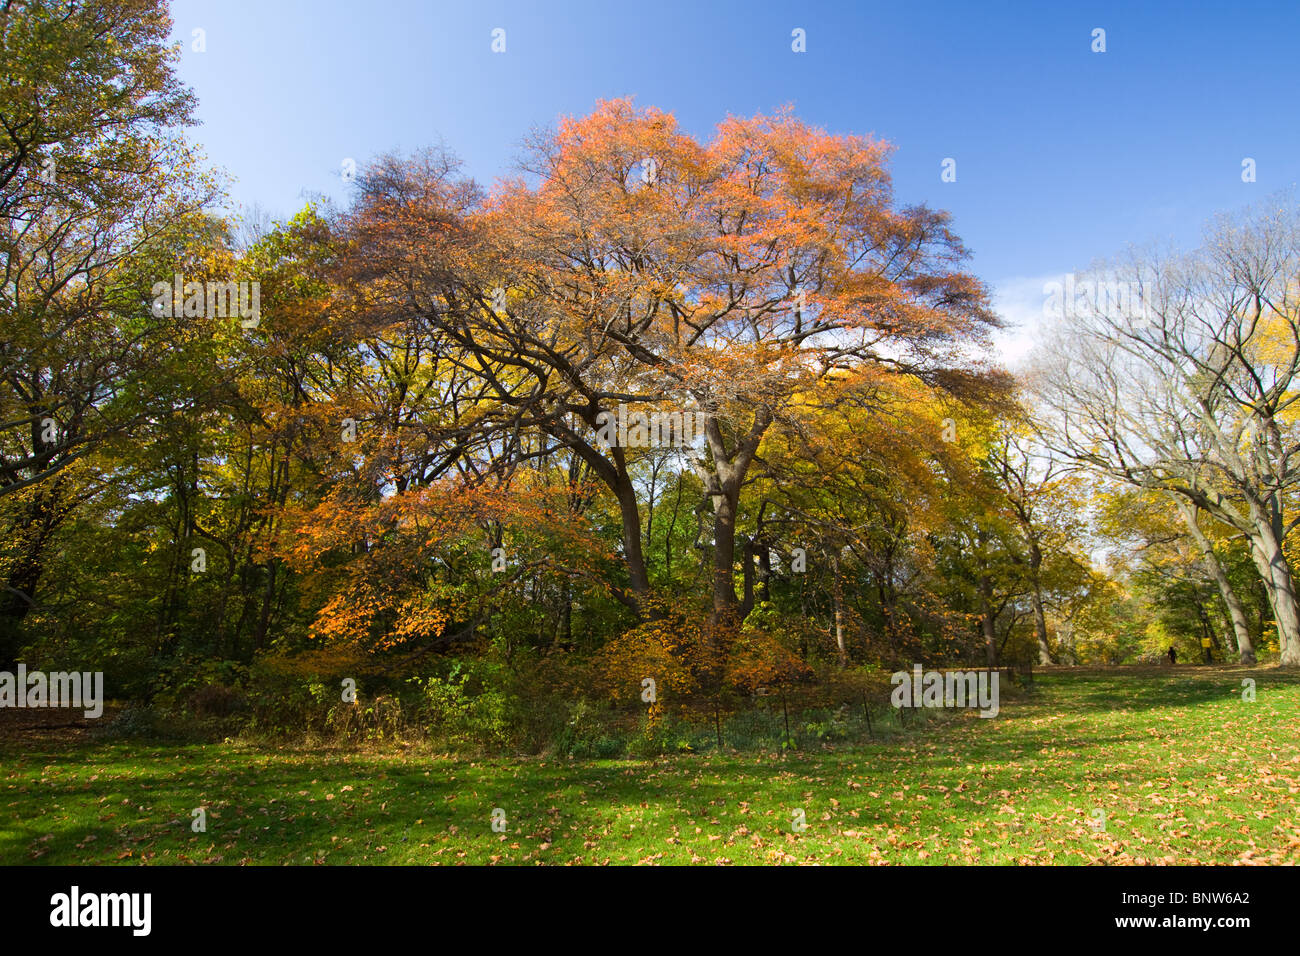 Black Tupelo Tree in Fall Colors in New York City's Central Park - Stock Image